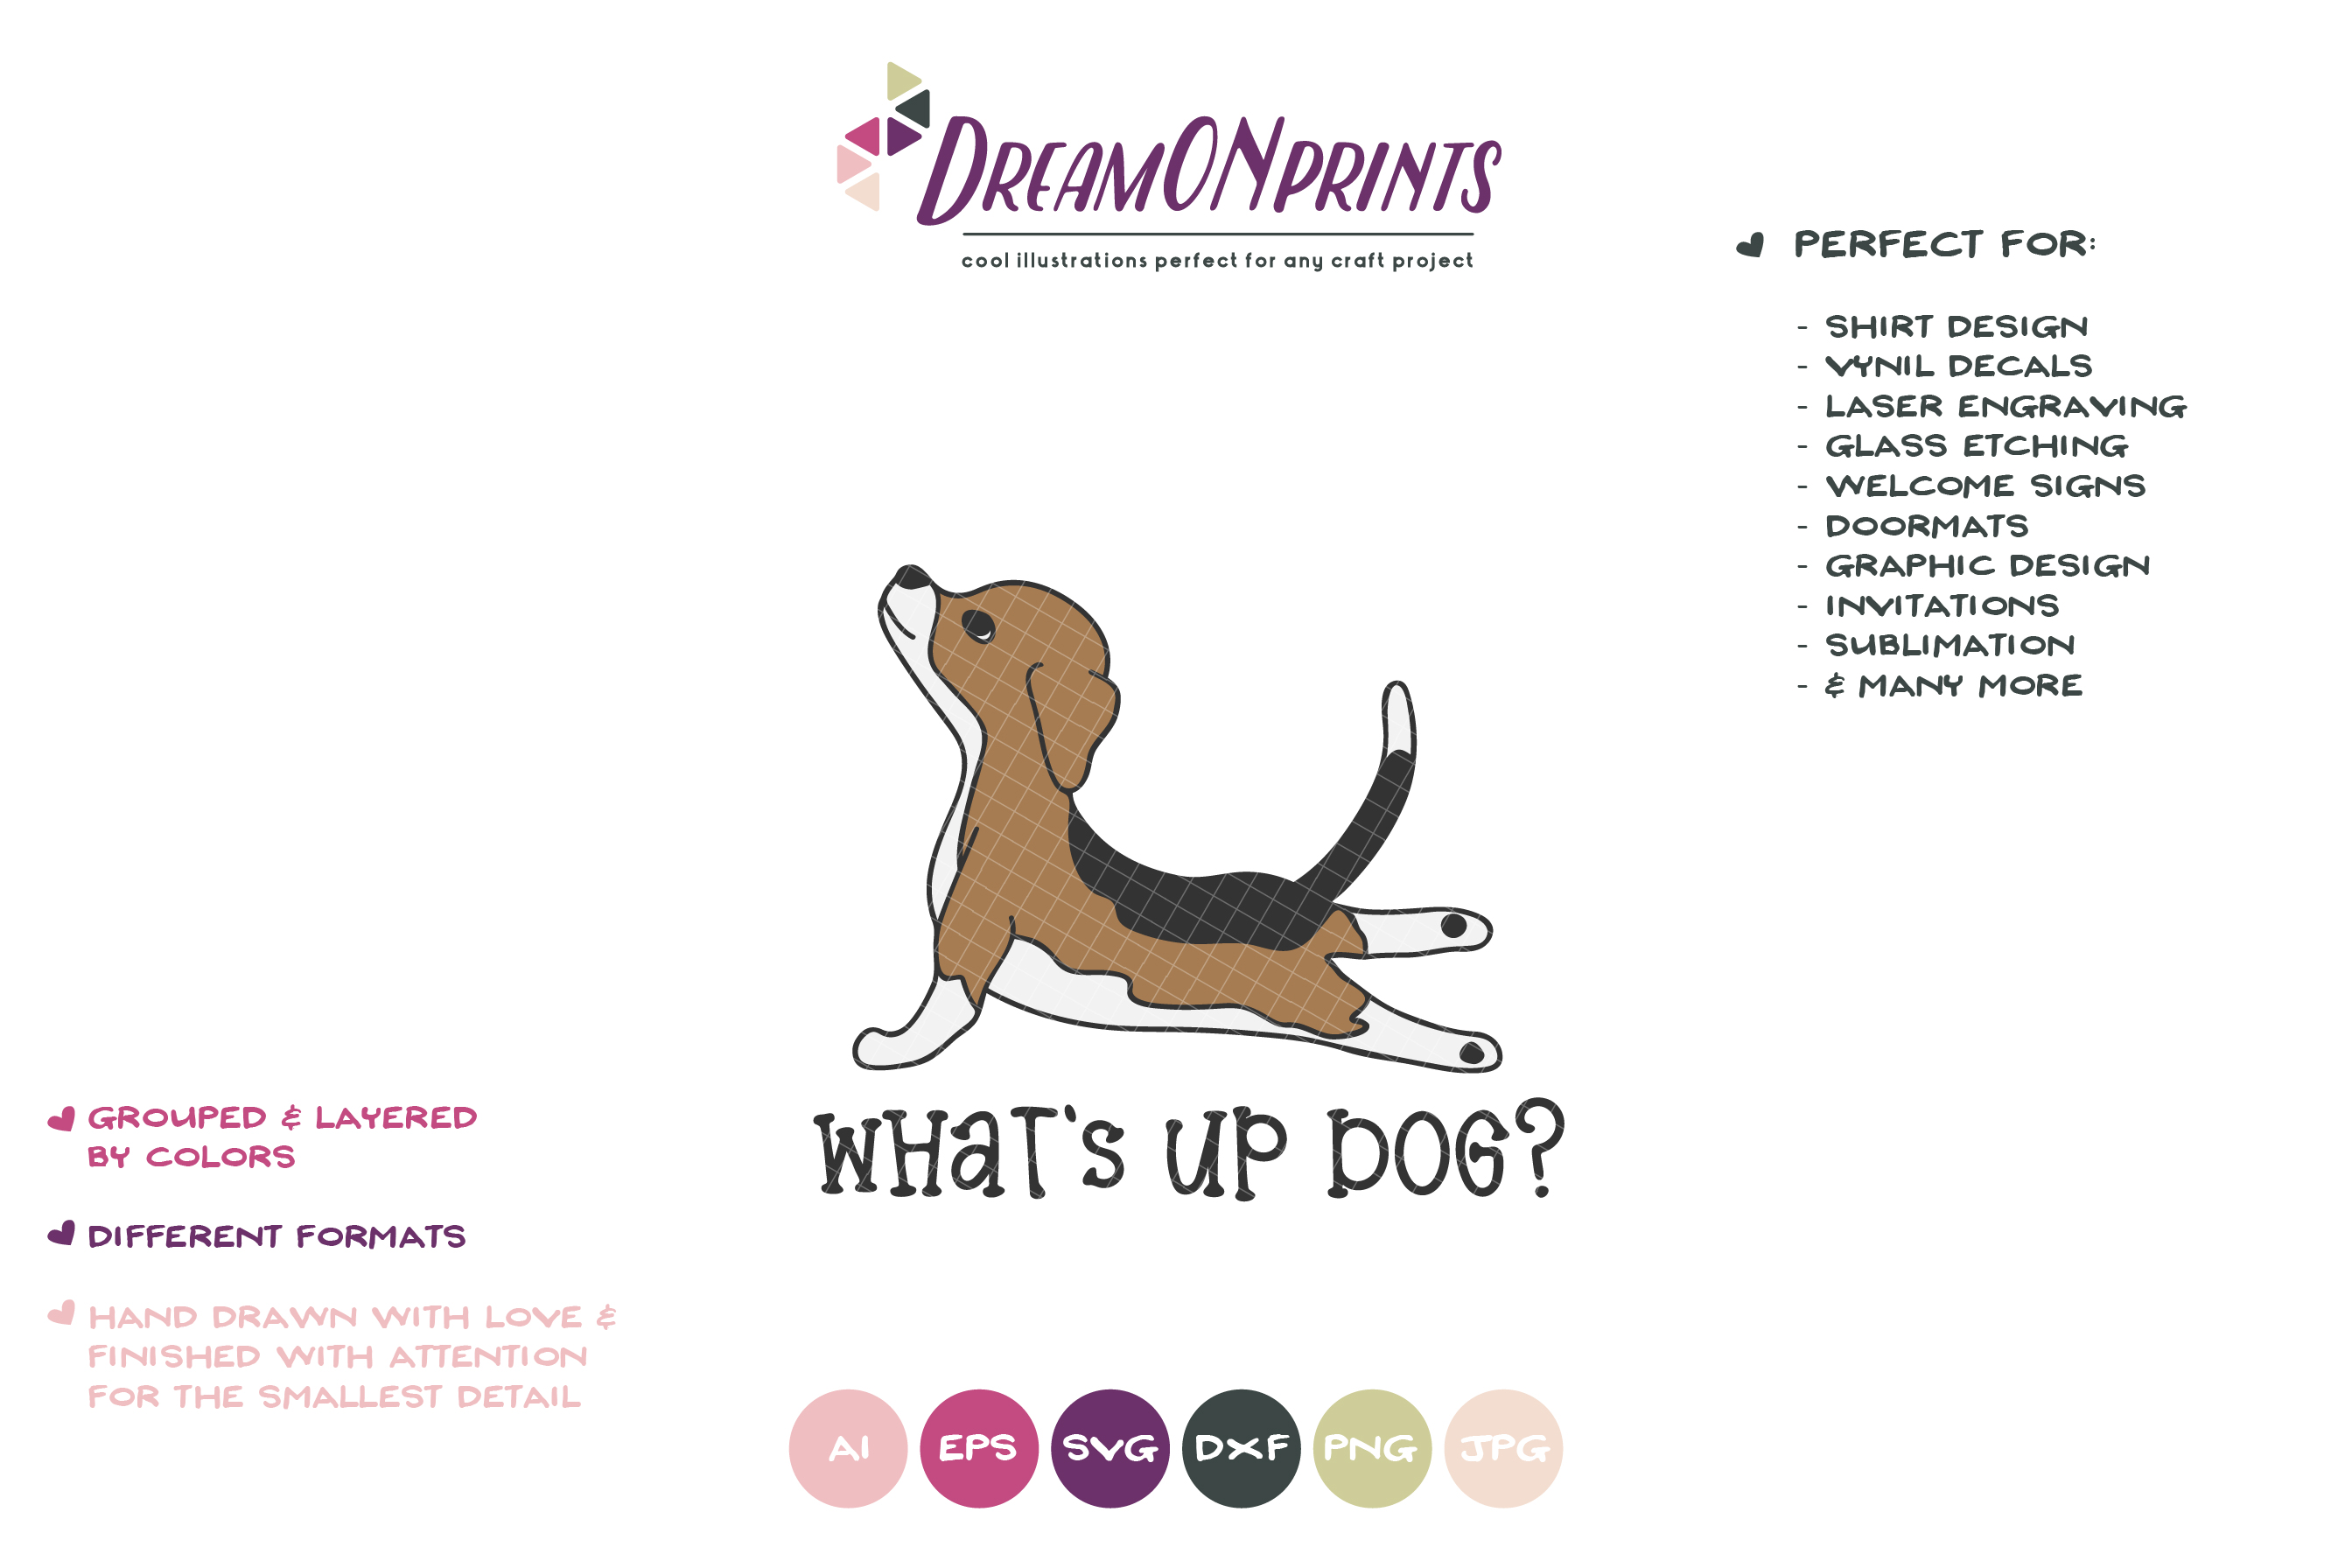 Yoga Dog SVG | Yoga Poses Up Dog | Beagle Illustration example image 2